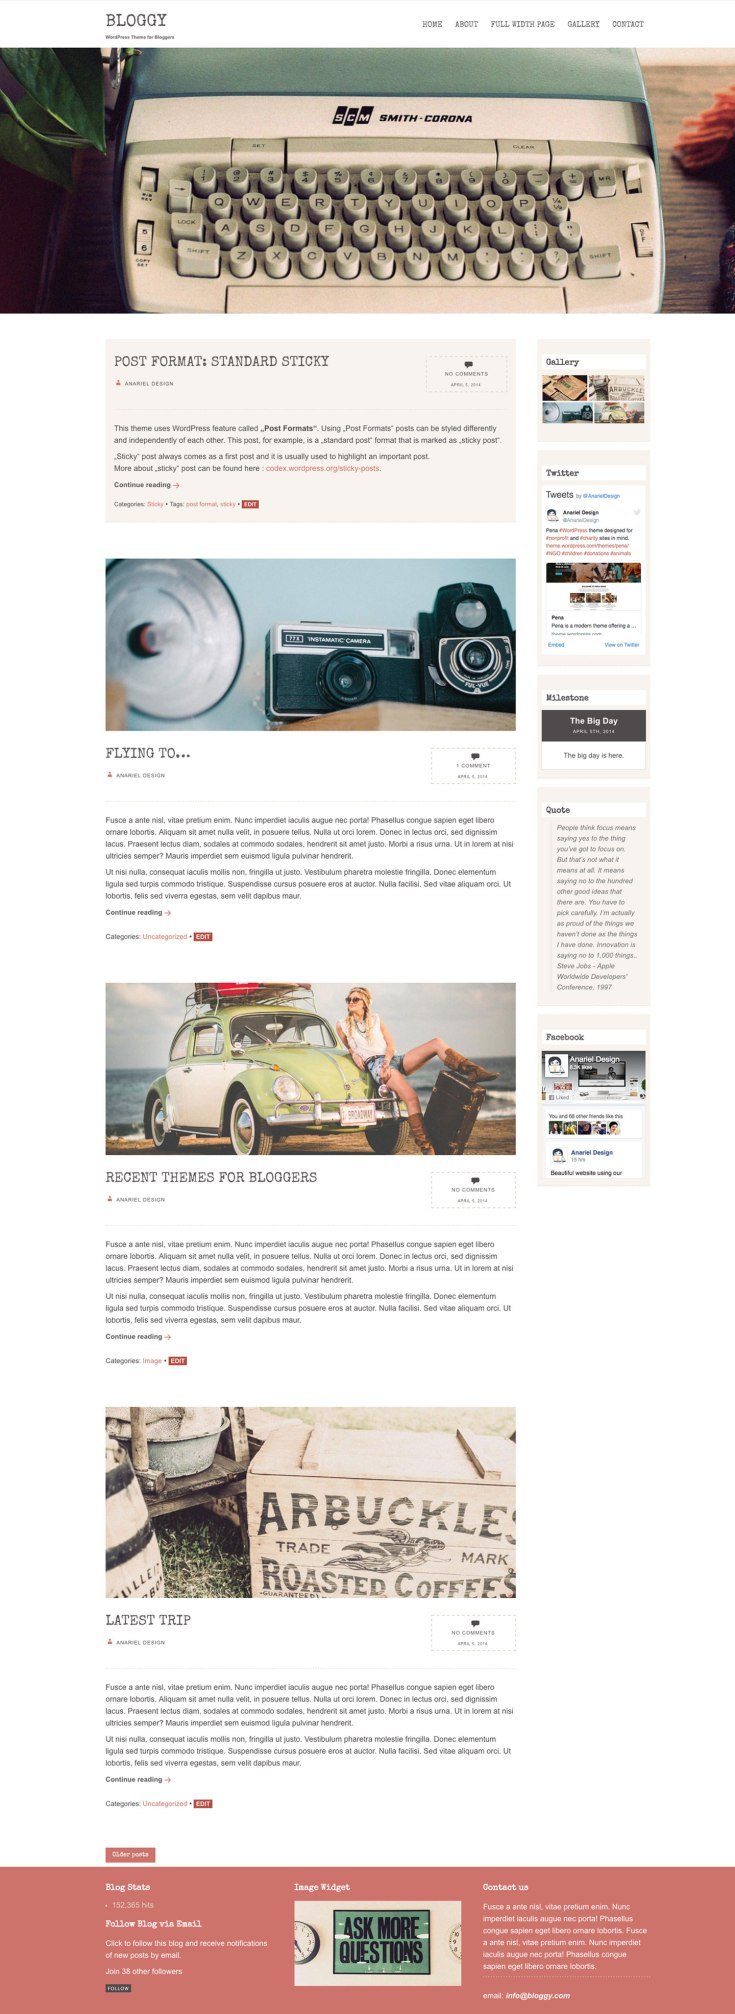 Screenshot of the Bloggy theme